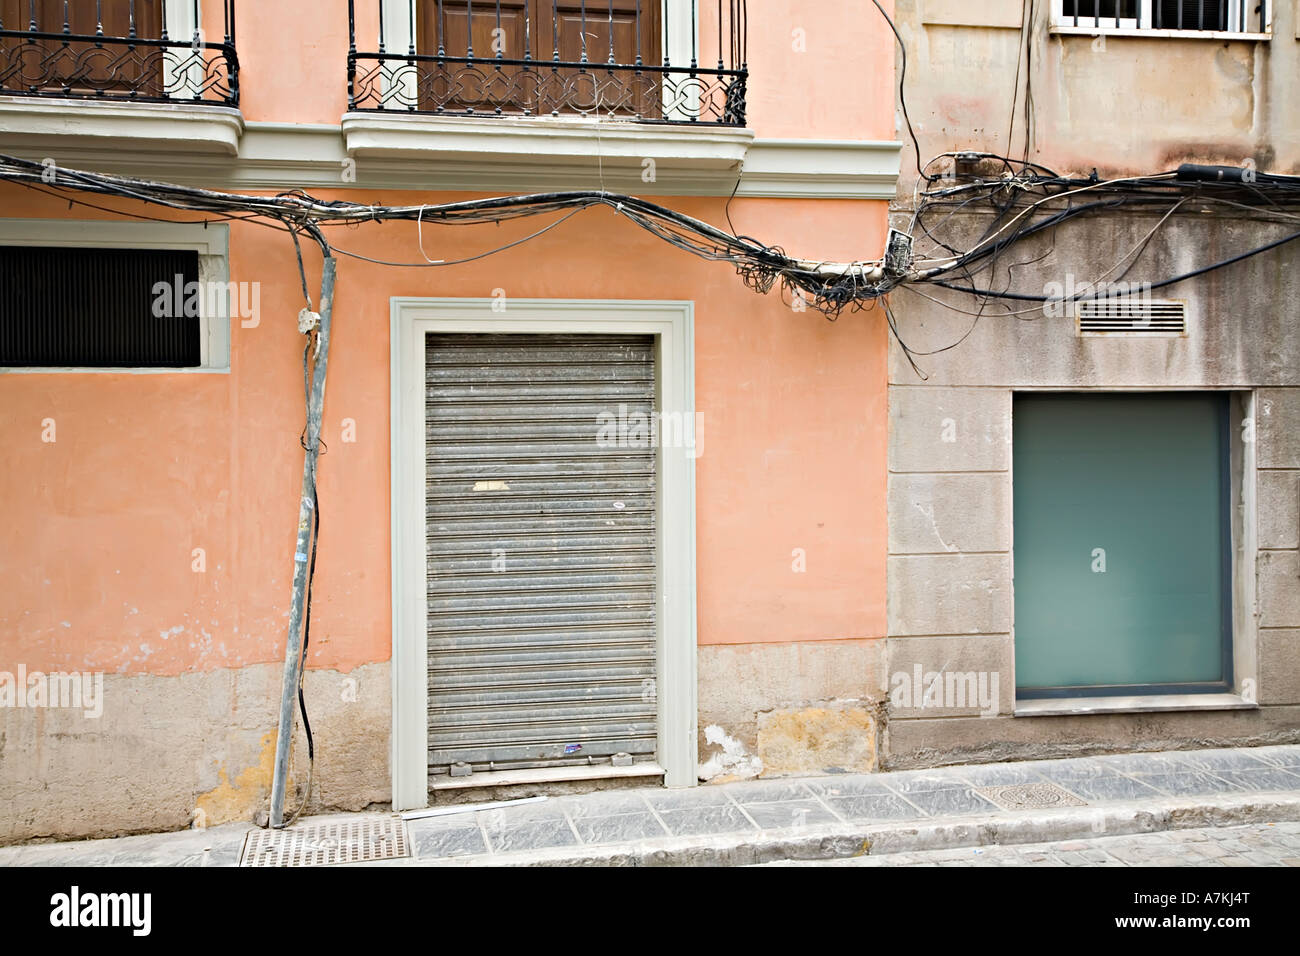 dangerous exposed electrical wiring on outside of house granada rh alamy com outside electrical wiring code outside electrical cable wiring regulations